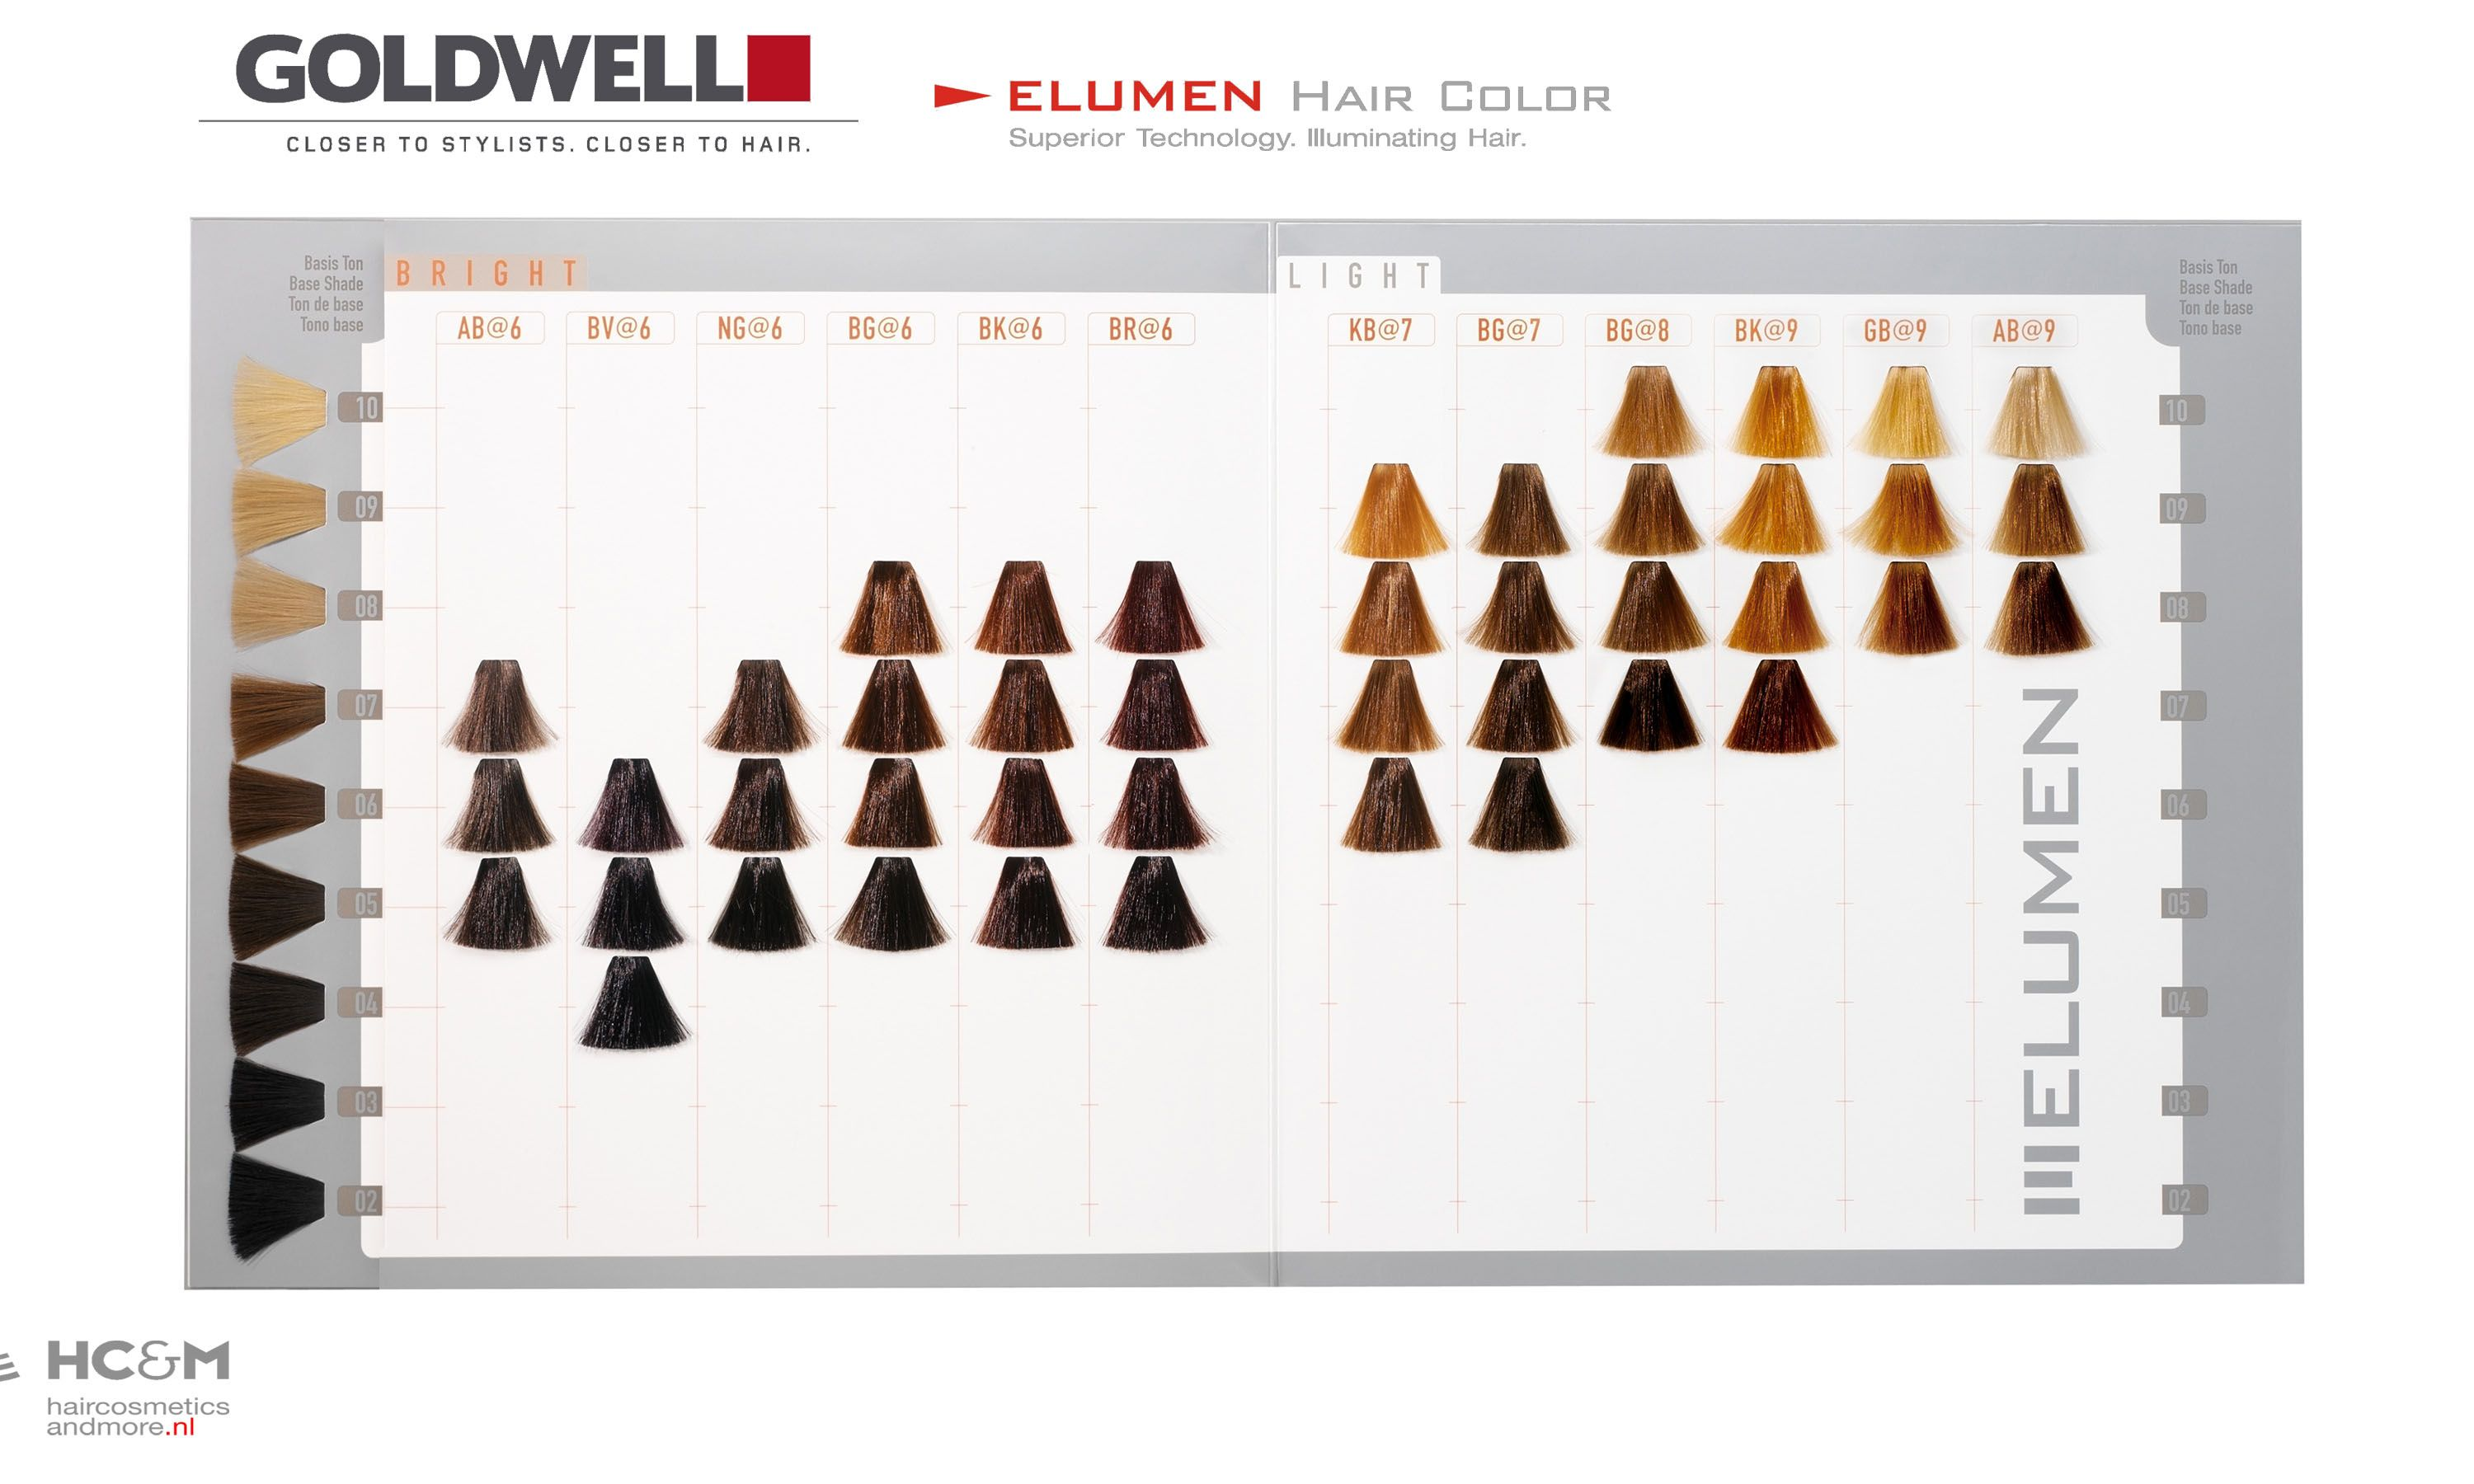 Goldwell elumen color chart previous charts pinterest also hobit fullring rh